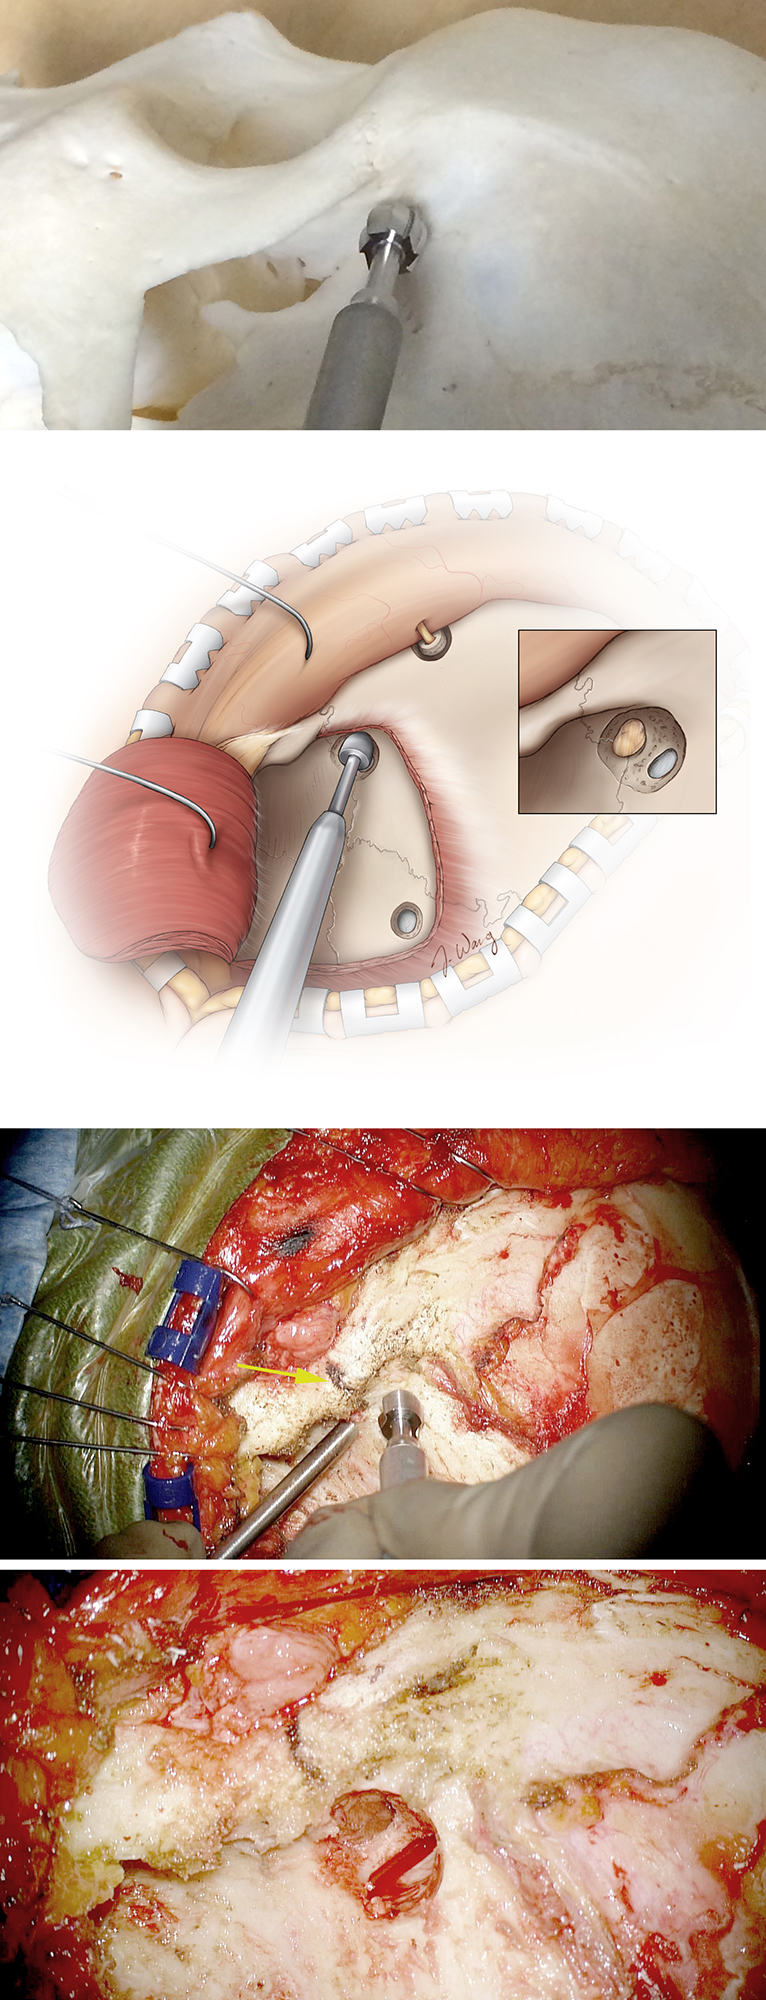 Figure 21: It is imperative to place the keyhole at the appropriate location and drill at the correct angle to expose both the periorbital and the frontal dura through the expanded burr hole. Accurate completion of the keyhole facilitates execution of the one-piece orbitozygomatic craniotomy and prevents excessive bone loss in the keyhole region and resultant cosmetic deformity.    The keyhole is made in the temporal fossa, about 7-mm superior and 5-mm posterior to the frontozygomatic suture (yellow arrow). The shaft of the drill is held at a 45 degree angle measured from the plane of the temporal bone. The supraposterior half of this burr hole exposes the dura of the anterior fossa, while the anteroinferior part exposes the periorbita (inset). The roof of the orbit divides these two compartments within the keyhole.